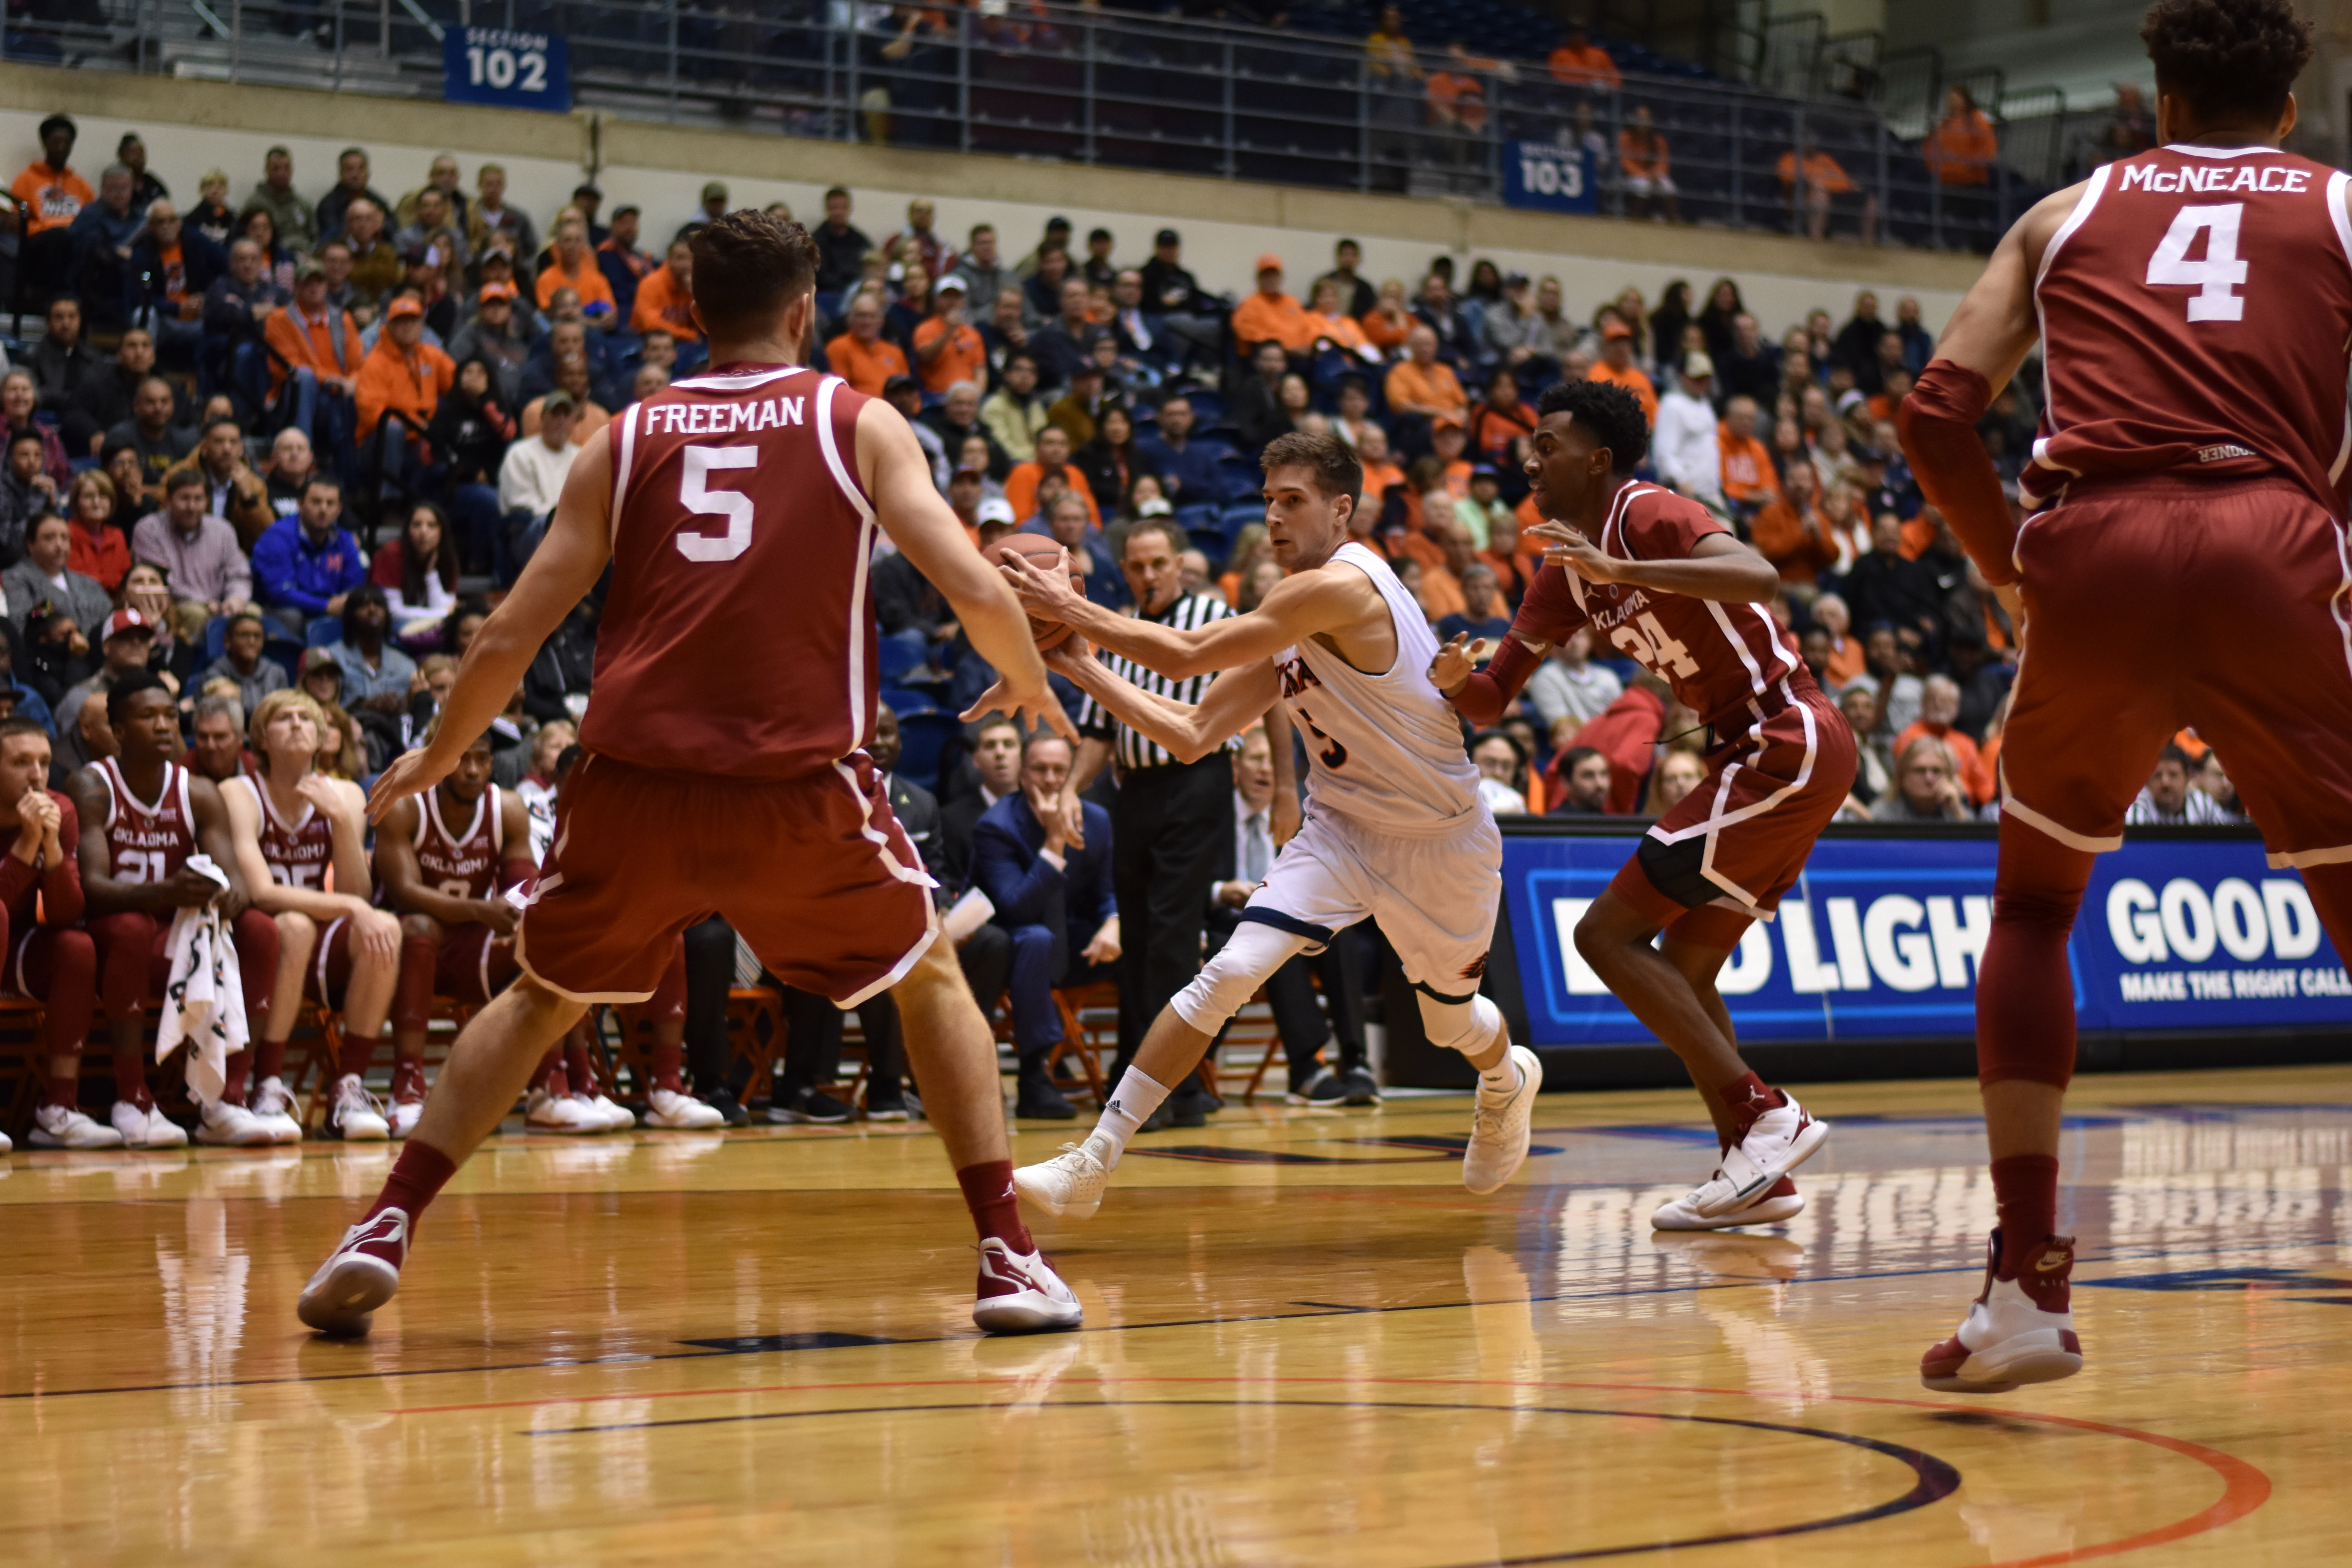 Guard Giovanni De Nicolao dribbles past some Oklahoma Sooners on his way to the rim.